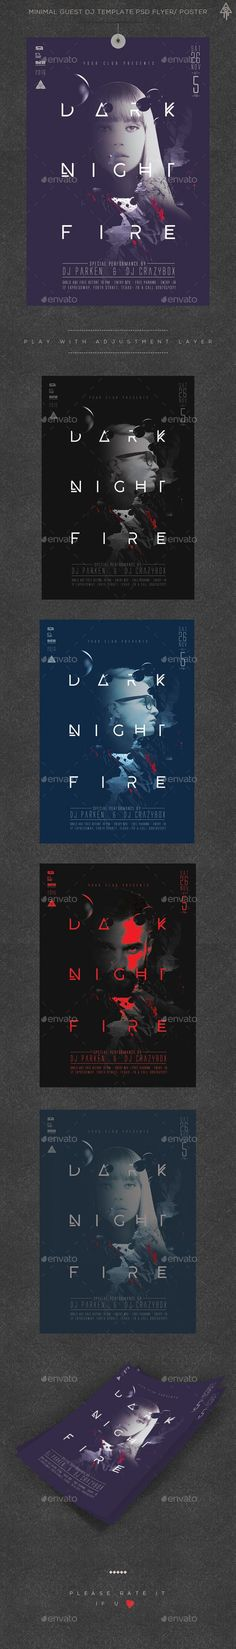 Minimal Dark Night Guest Dj Poster / Flyer Template PSD. Download here: http://graphicriver.net/item/minimal-dark-night-guest-dj-poster-flyer/14785357?ref=ksioks: